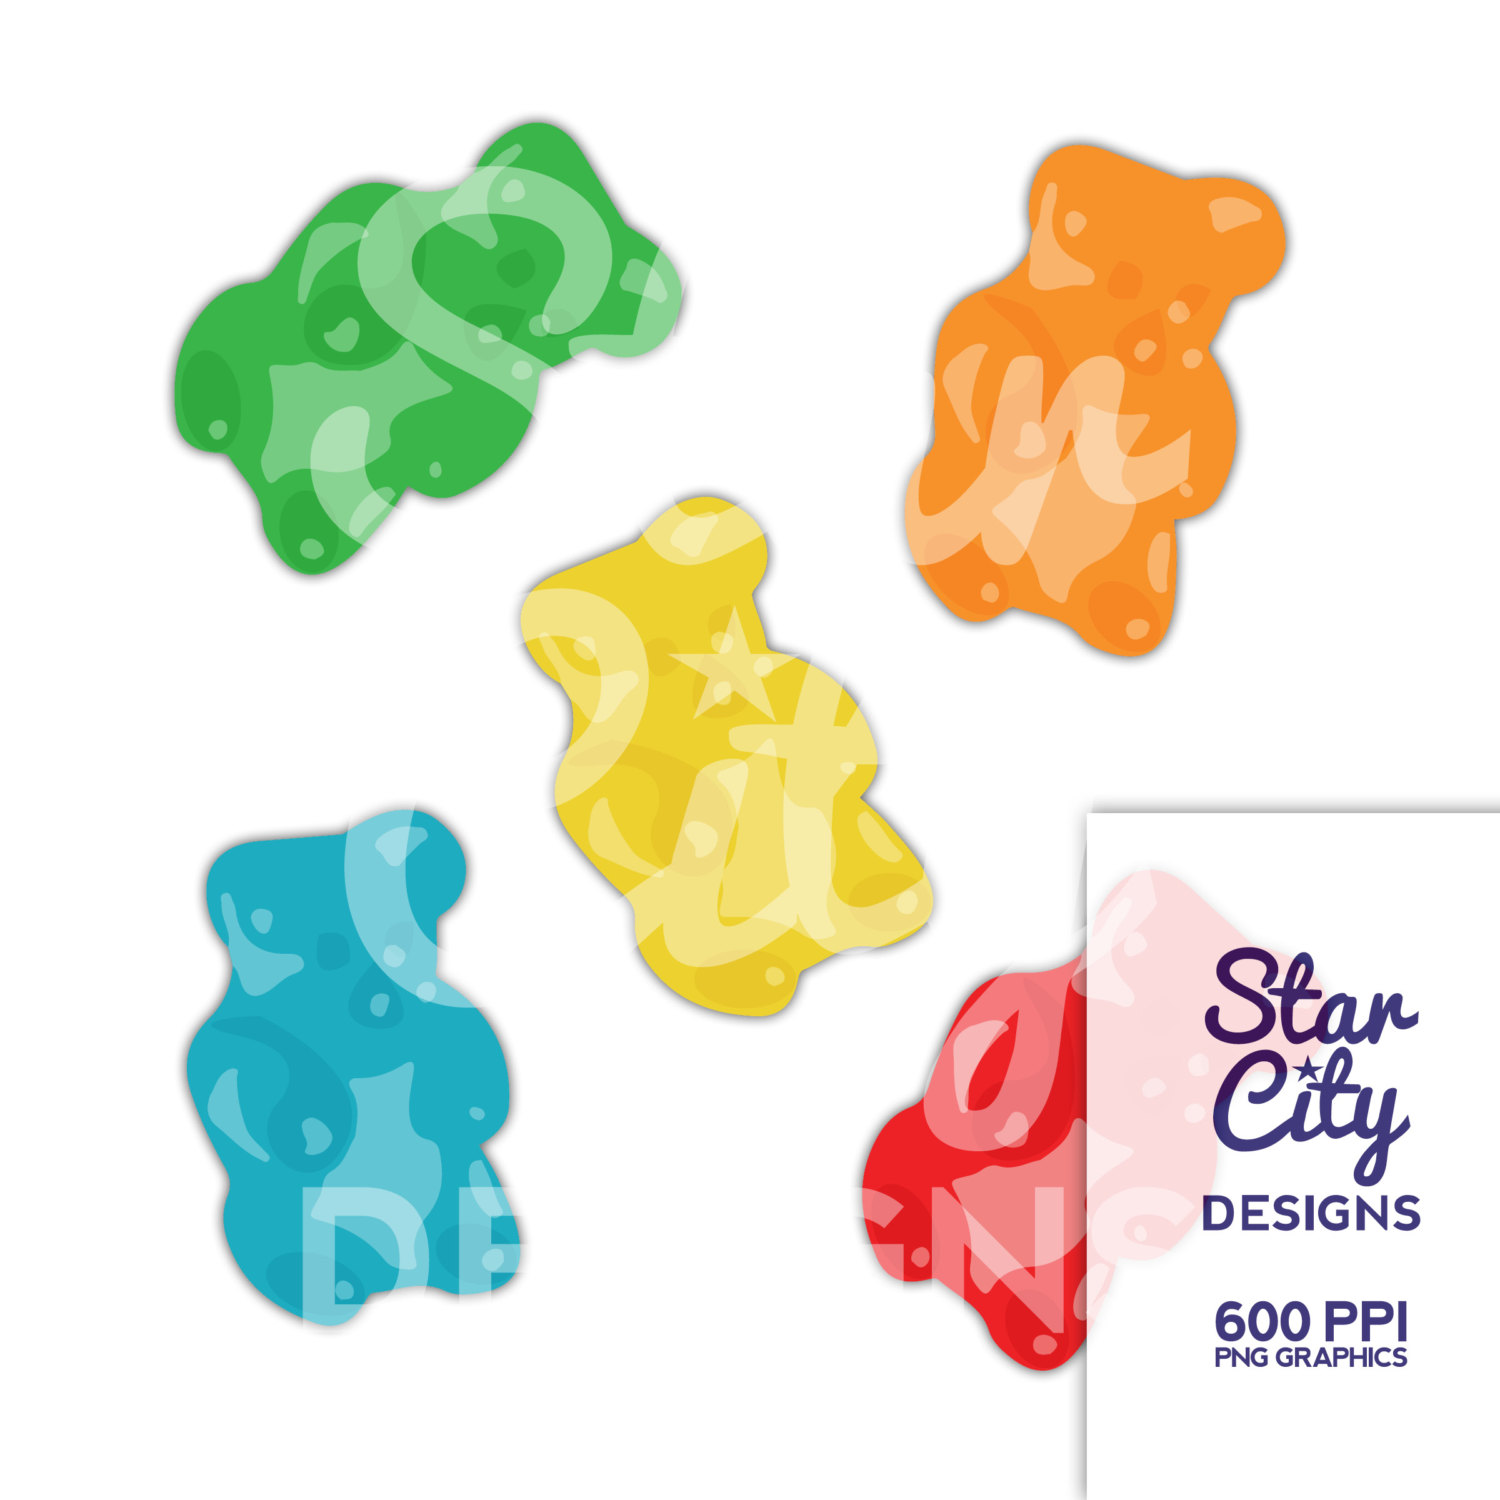 Gummy Bear clipart, gummy clipart, candy clipart, gummy clip art, clipart, vector art, vector graphics, instant download